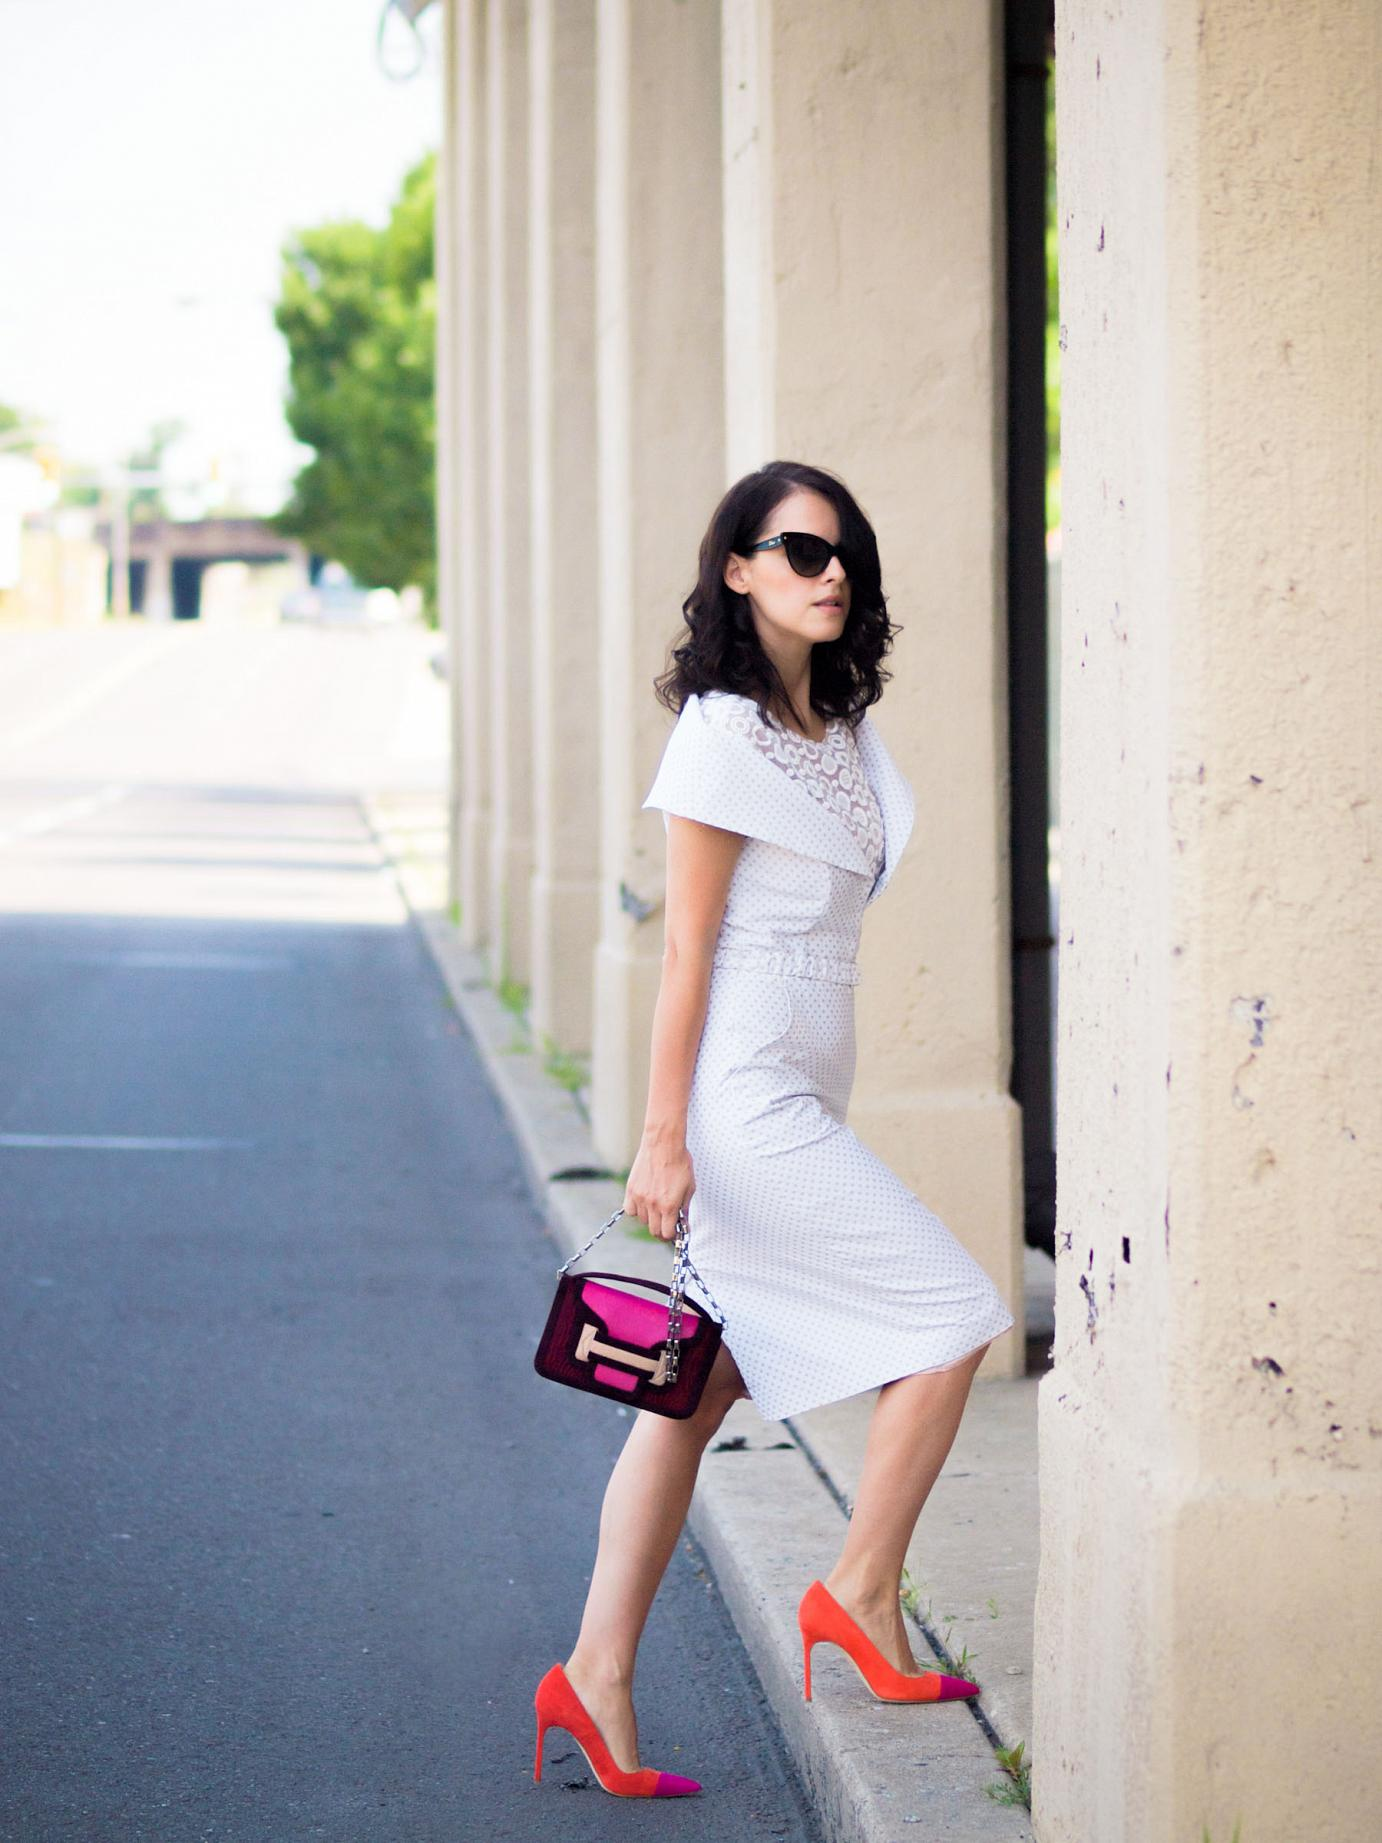 bittersweet colours, tia cibani, pierre hardy bag, manolo blahnik shoes, dior sunglasses, polka dots trend, polka dot dress, summer style, summer dress, colours, street style